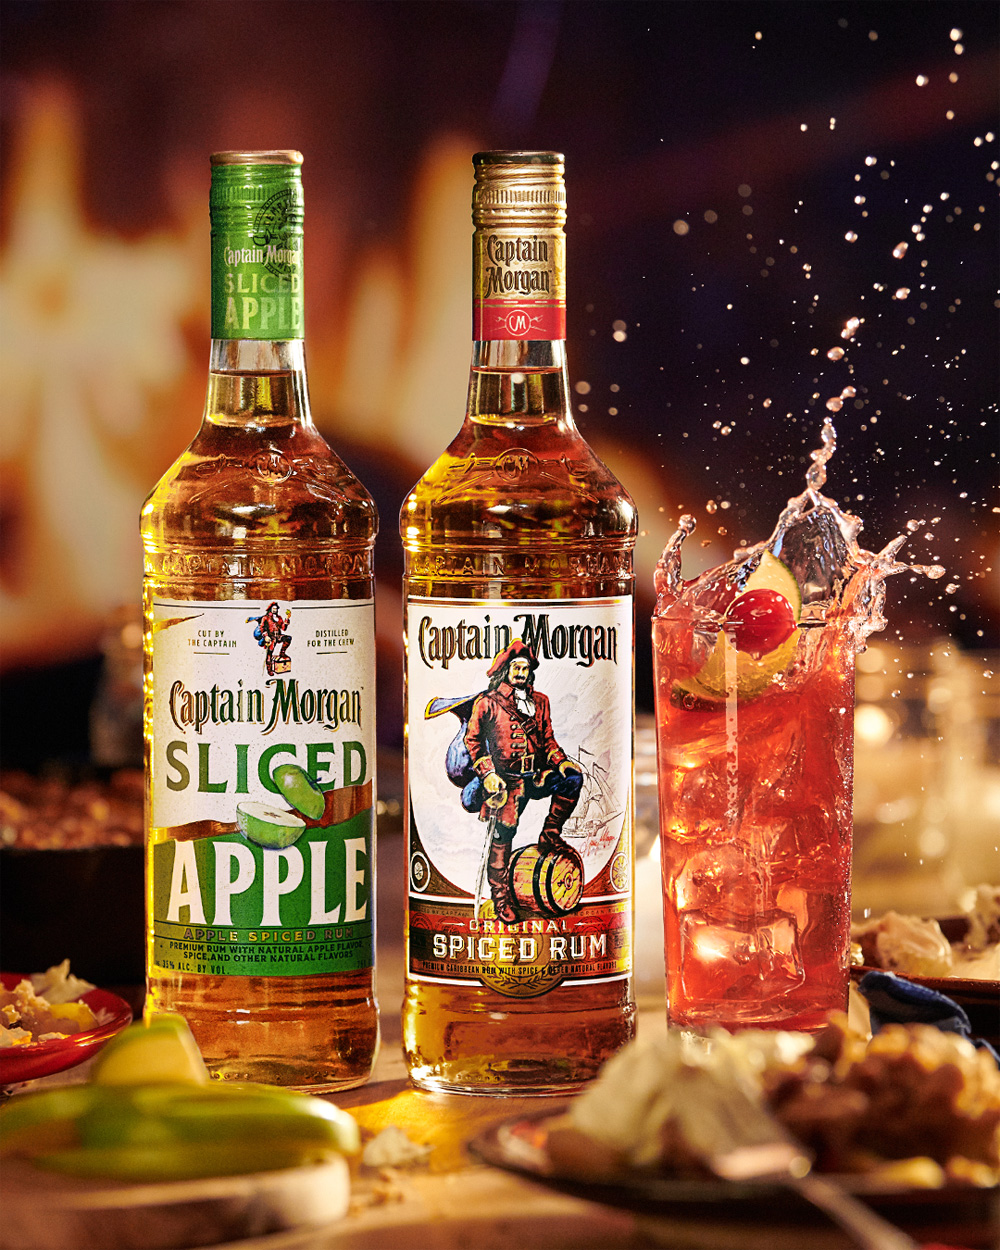 Captain Morgan Holiday Spiced and Sliced